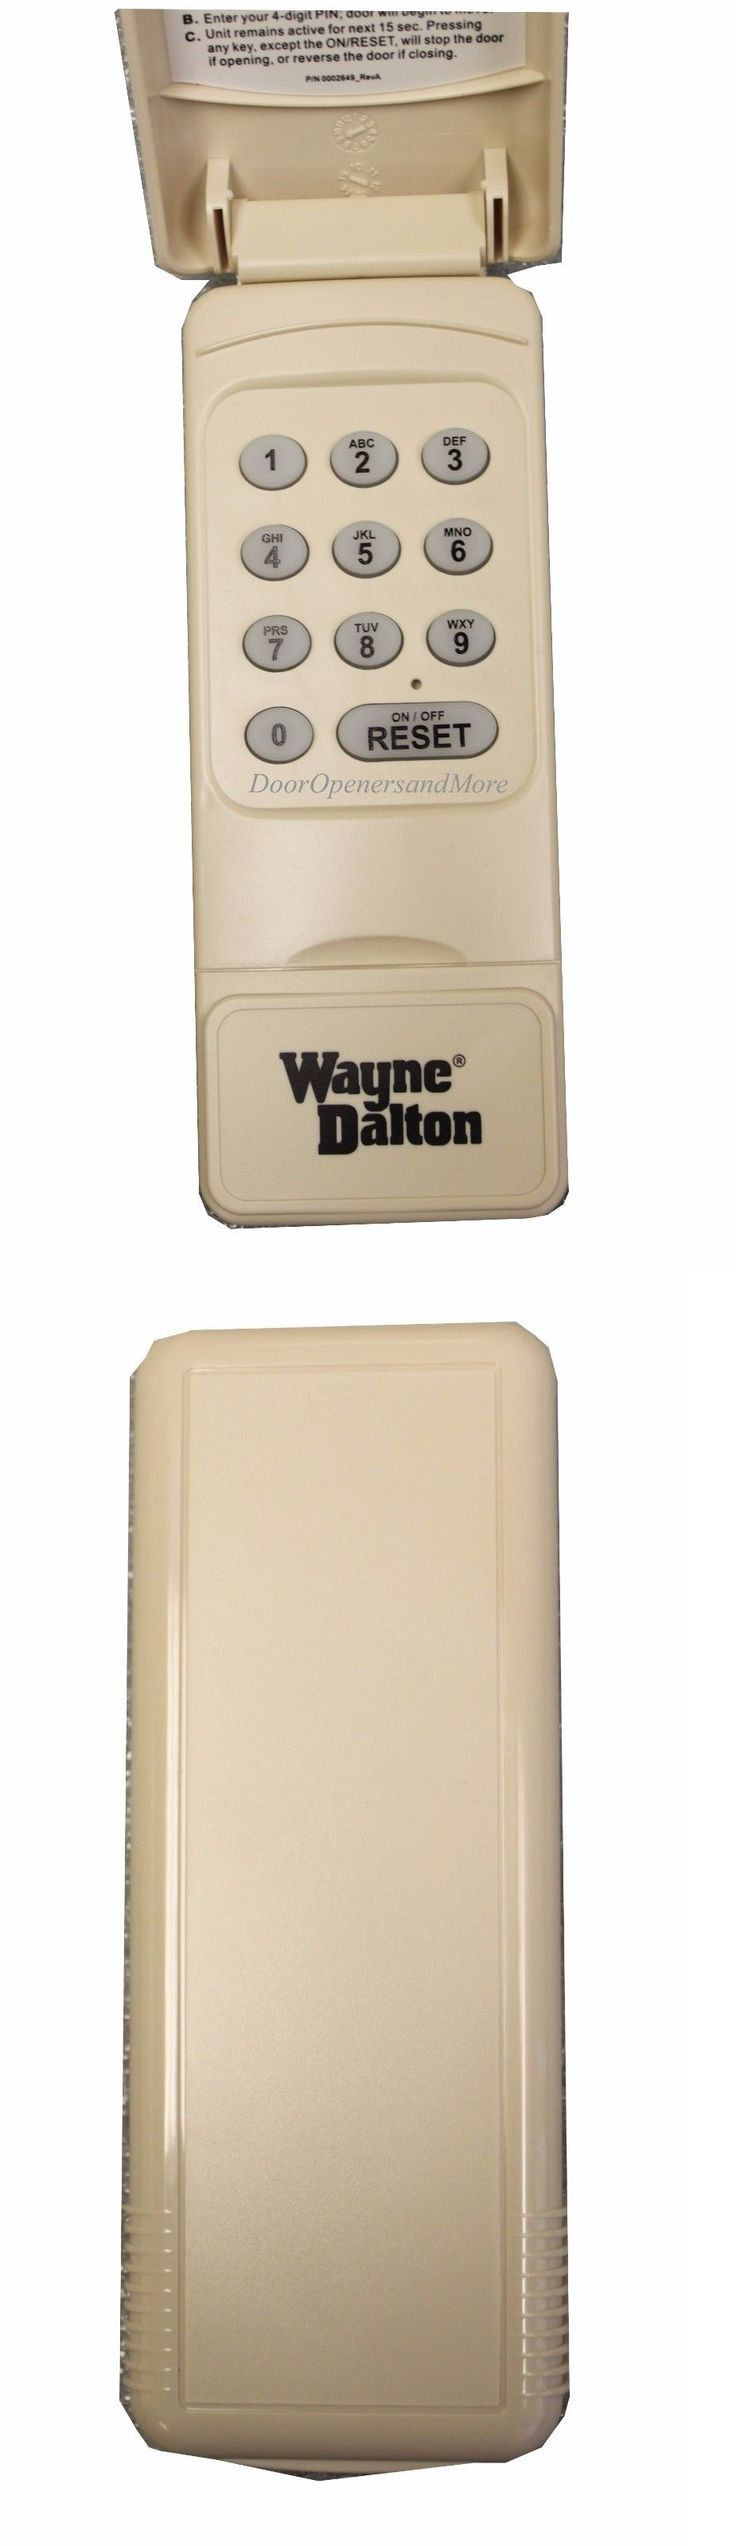 Garage Door Remotes 85899: Wayne Dalton 327607 288830 Wireless Keypad 372 Mhz Compatible W 327310 And 300643 -> BUY IT NOW ONLY: $49.95 on eBay!